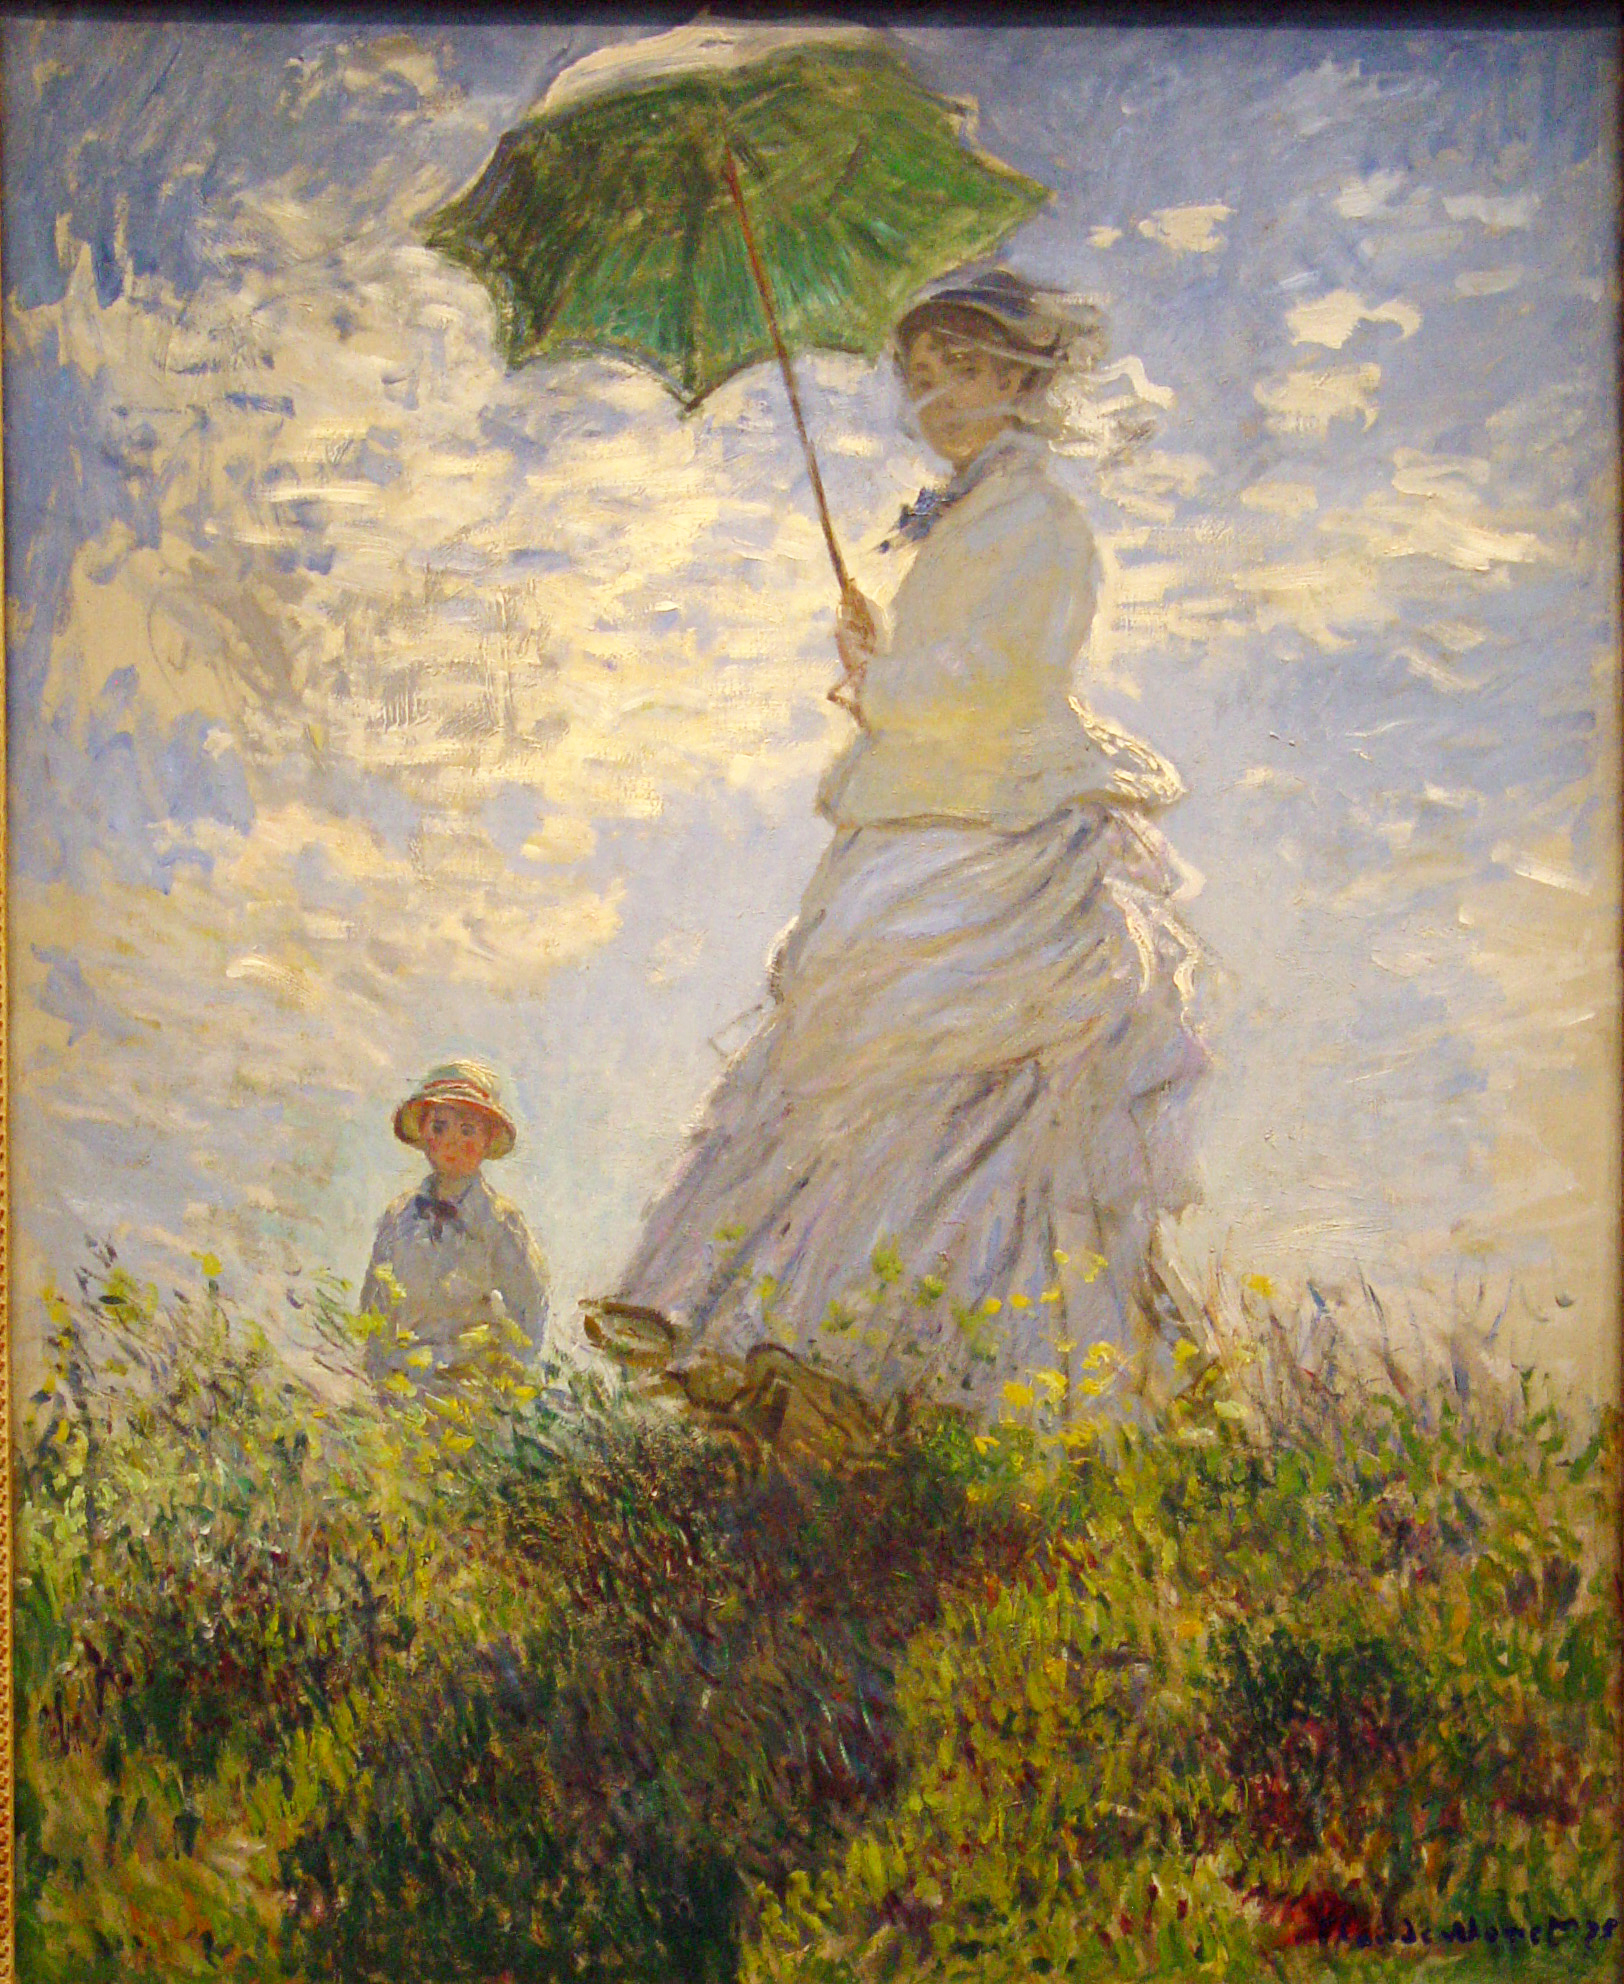 C. Monet_Umbrella.jpg